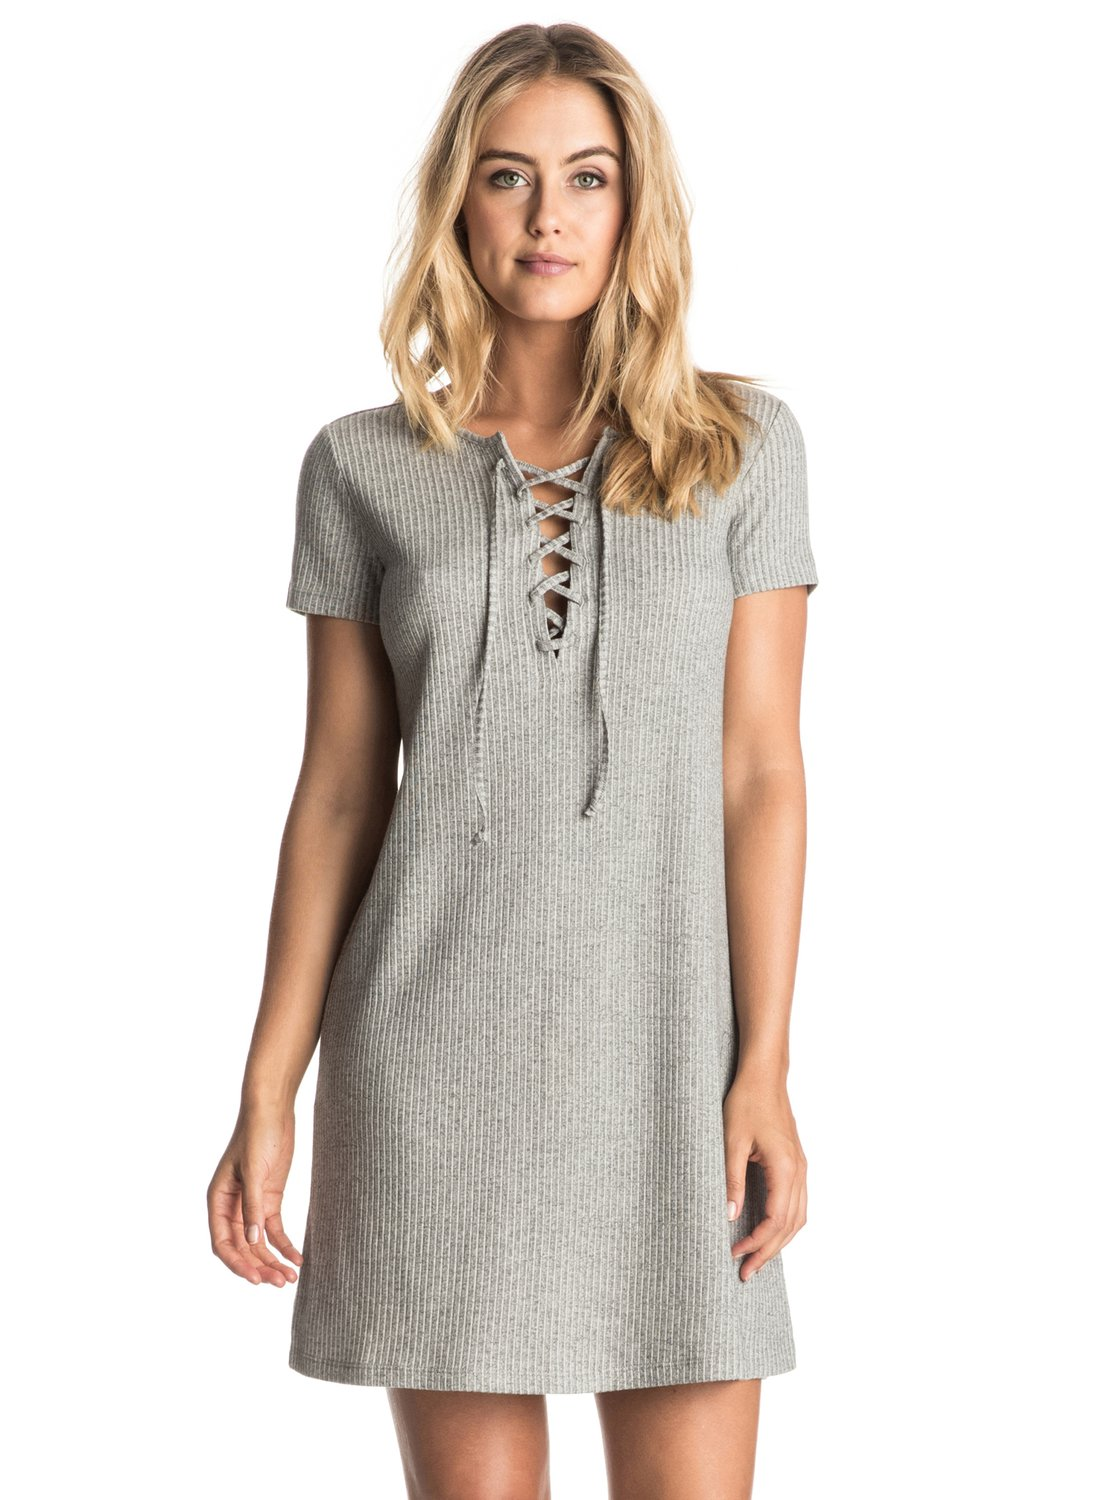 Go Your Way - Robe tee-shirt pour Femme - Roxy